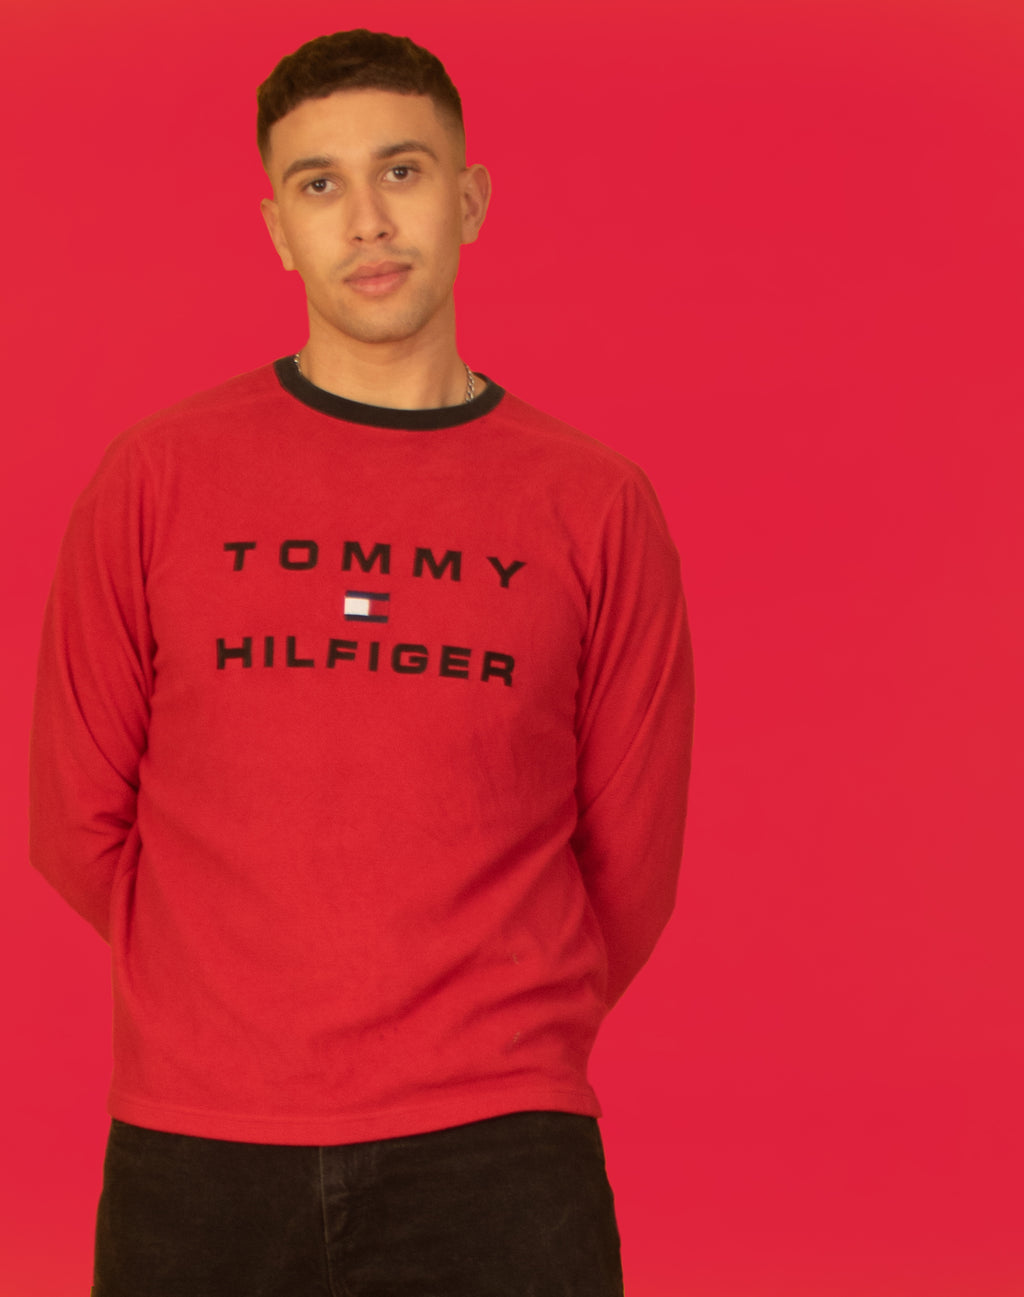 TOMMY HILFIGER RED KNIT JUMPER